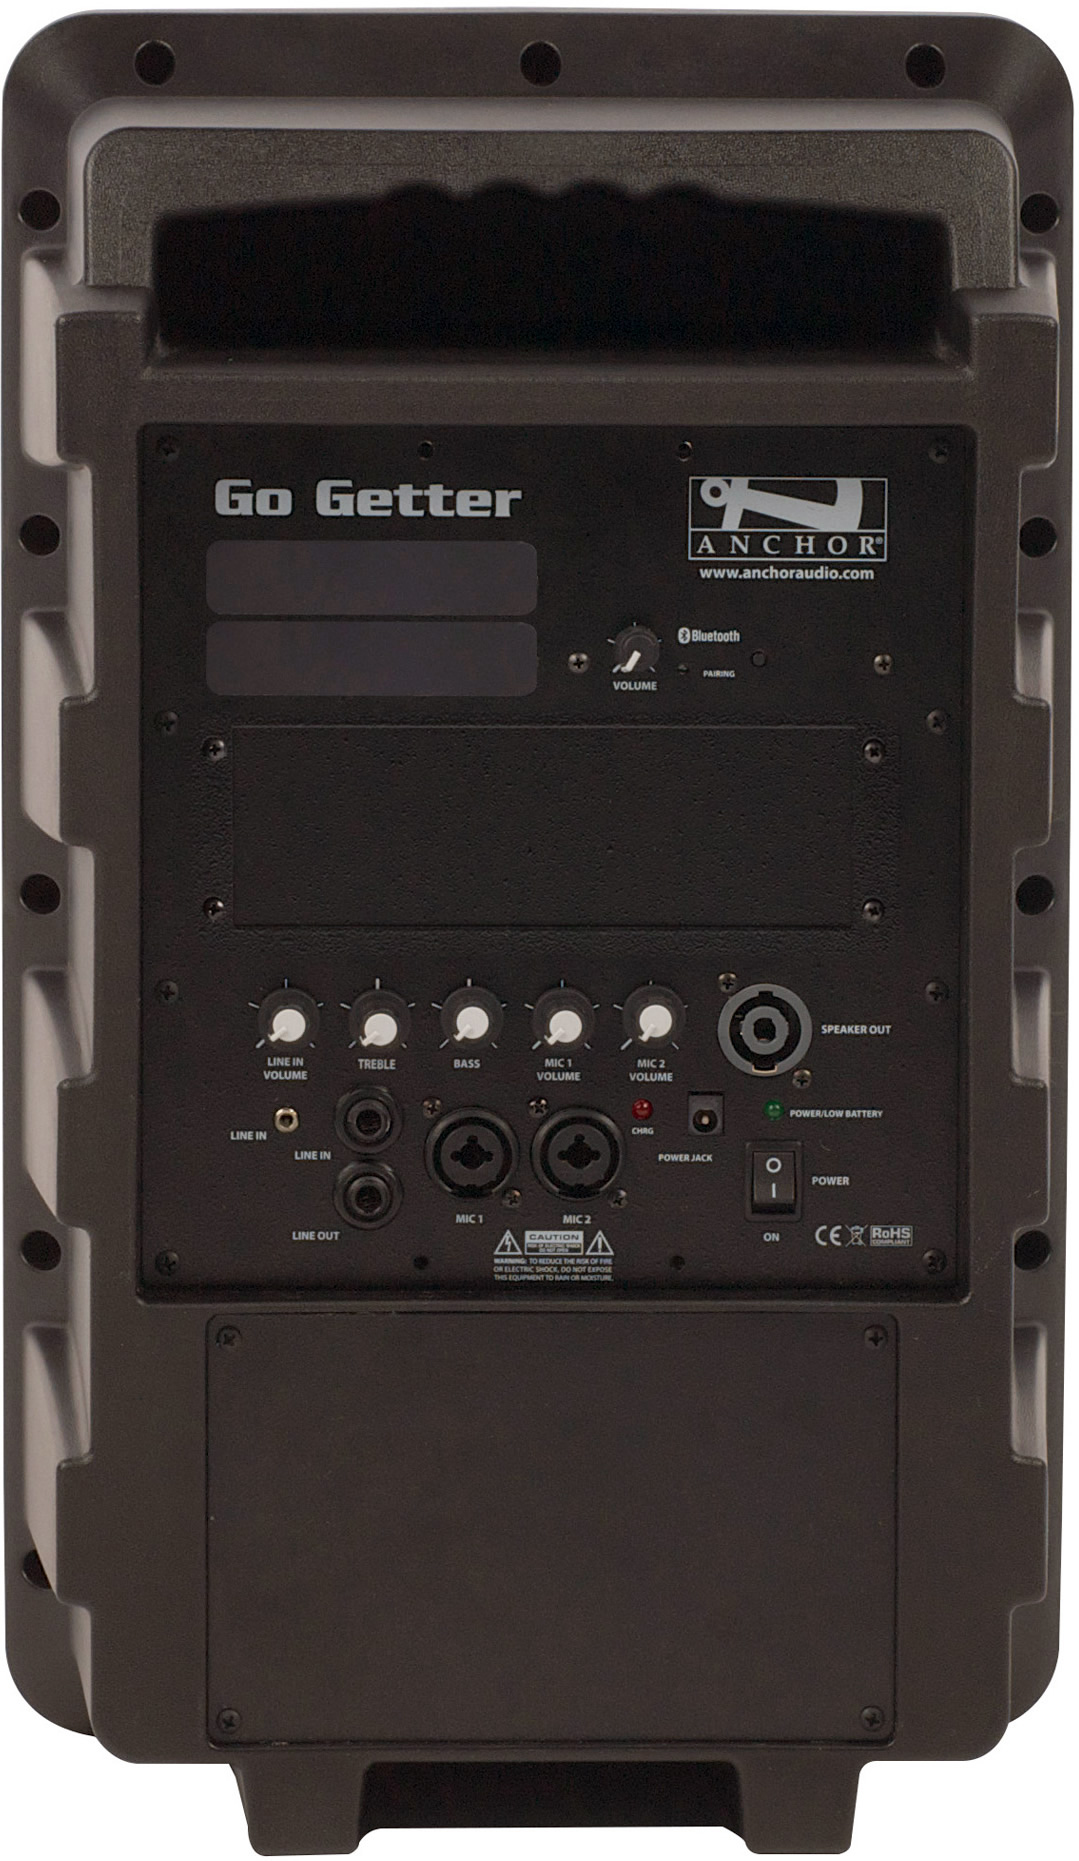 Anchor Gg 8000x Go Getter With Bluetooth Amp Air Wireless